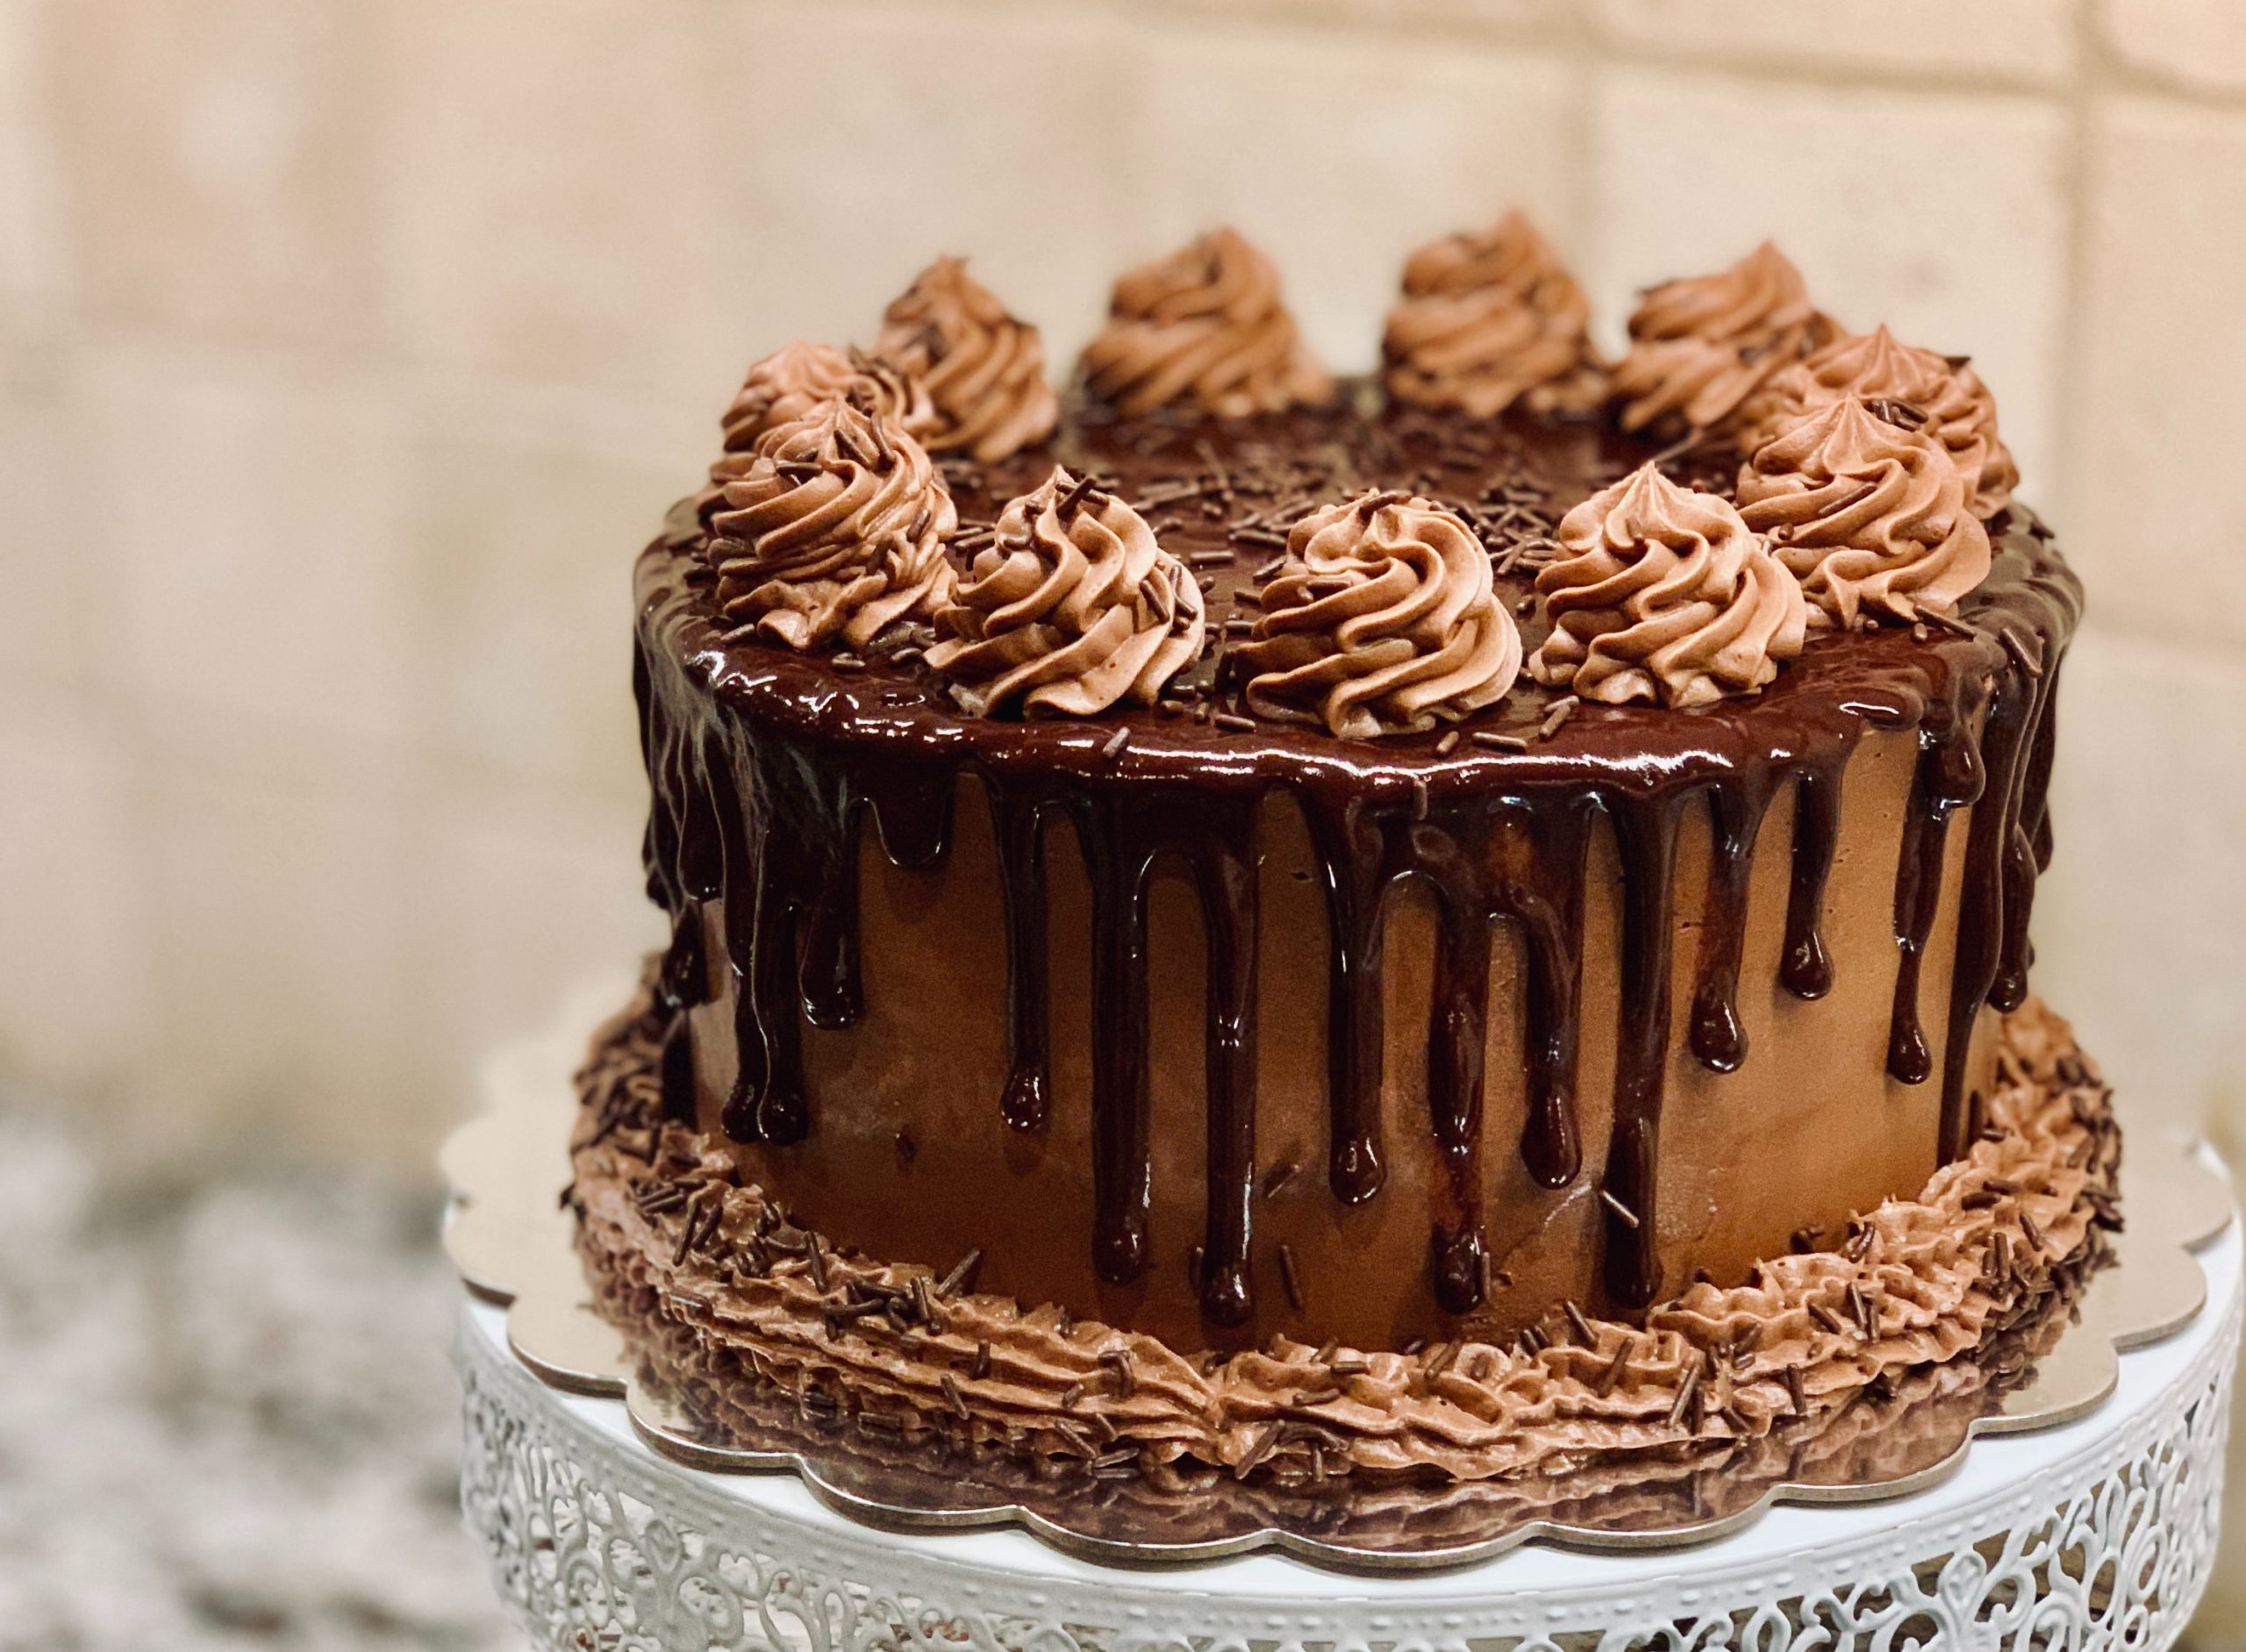 Chocolate Cake, Flowers, Dessert, Blue, Brown, Party, 2020, JanuaryIf you would like to taste this delicious hand made cake or send one to a friend, just shoot an email to julieyarden@gmail.com.